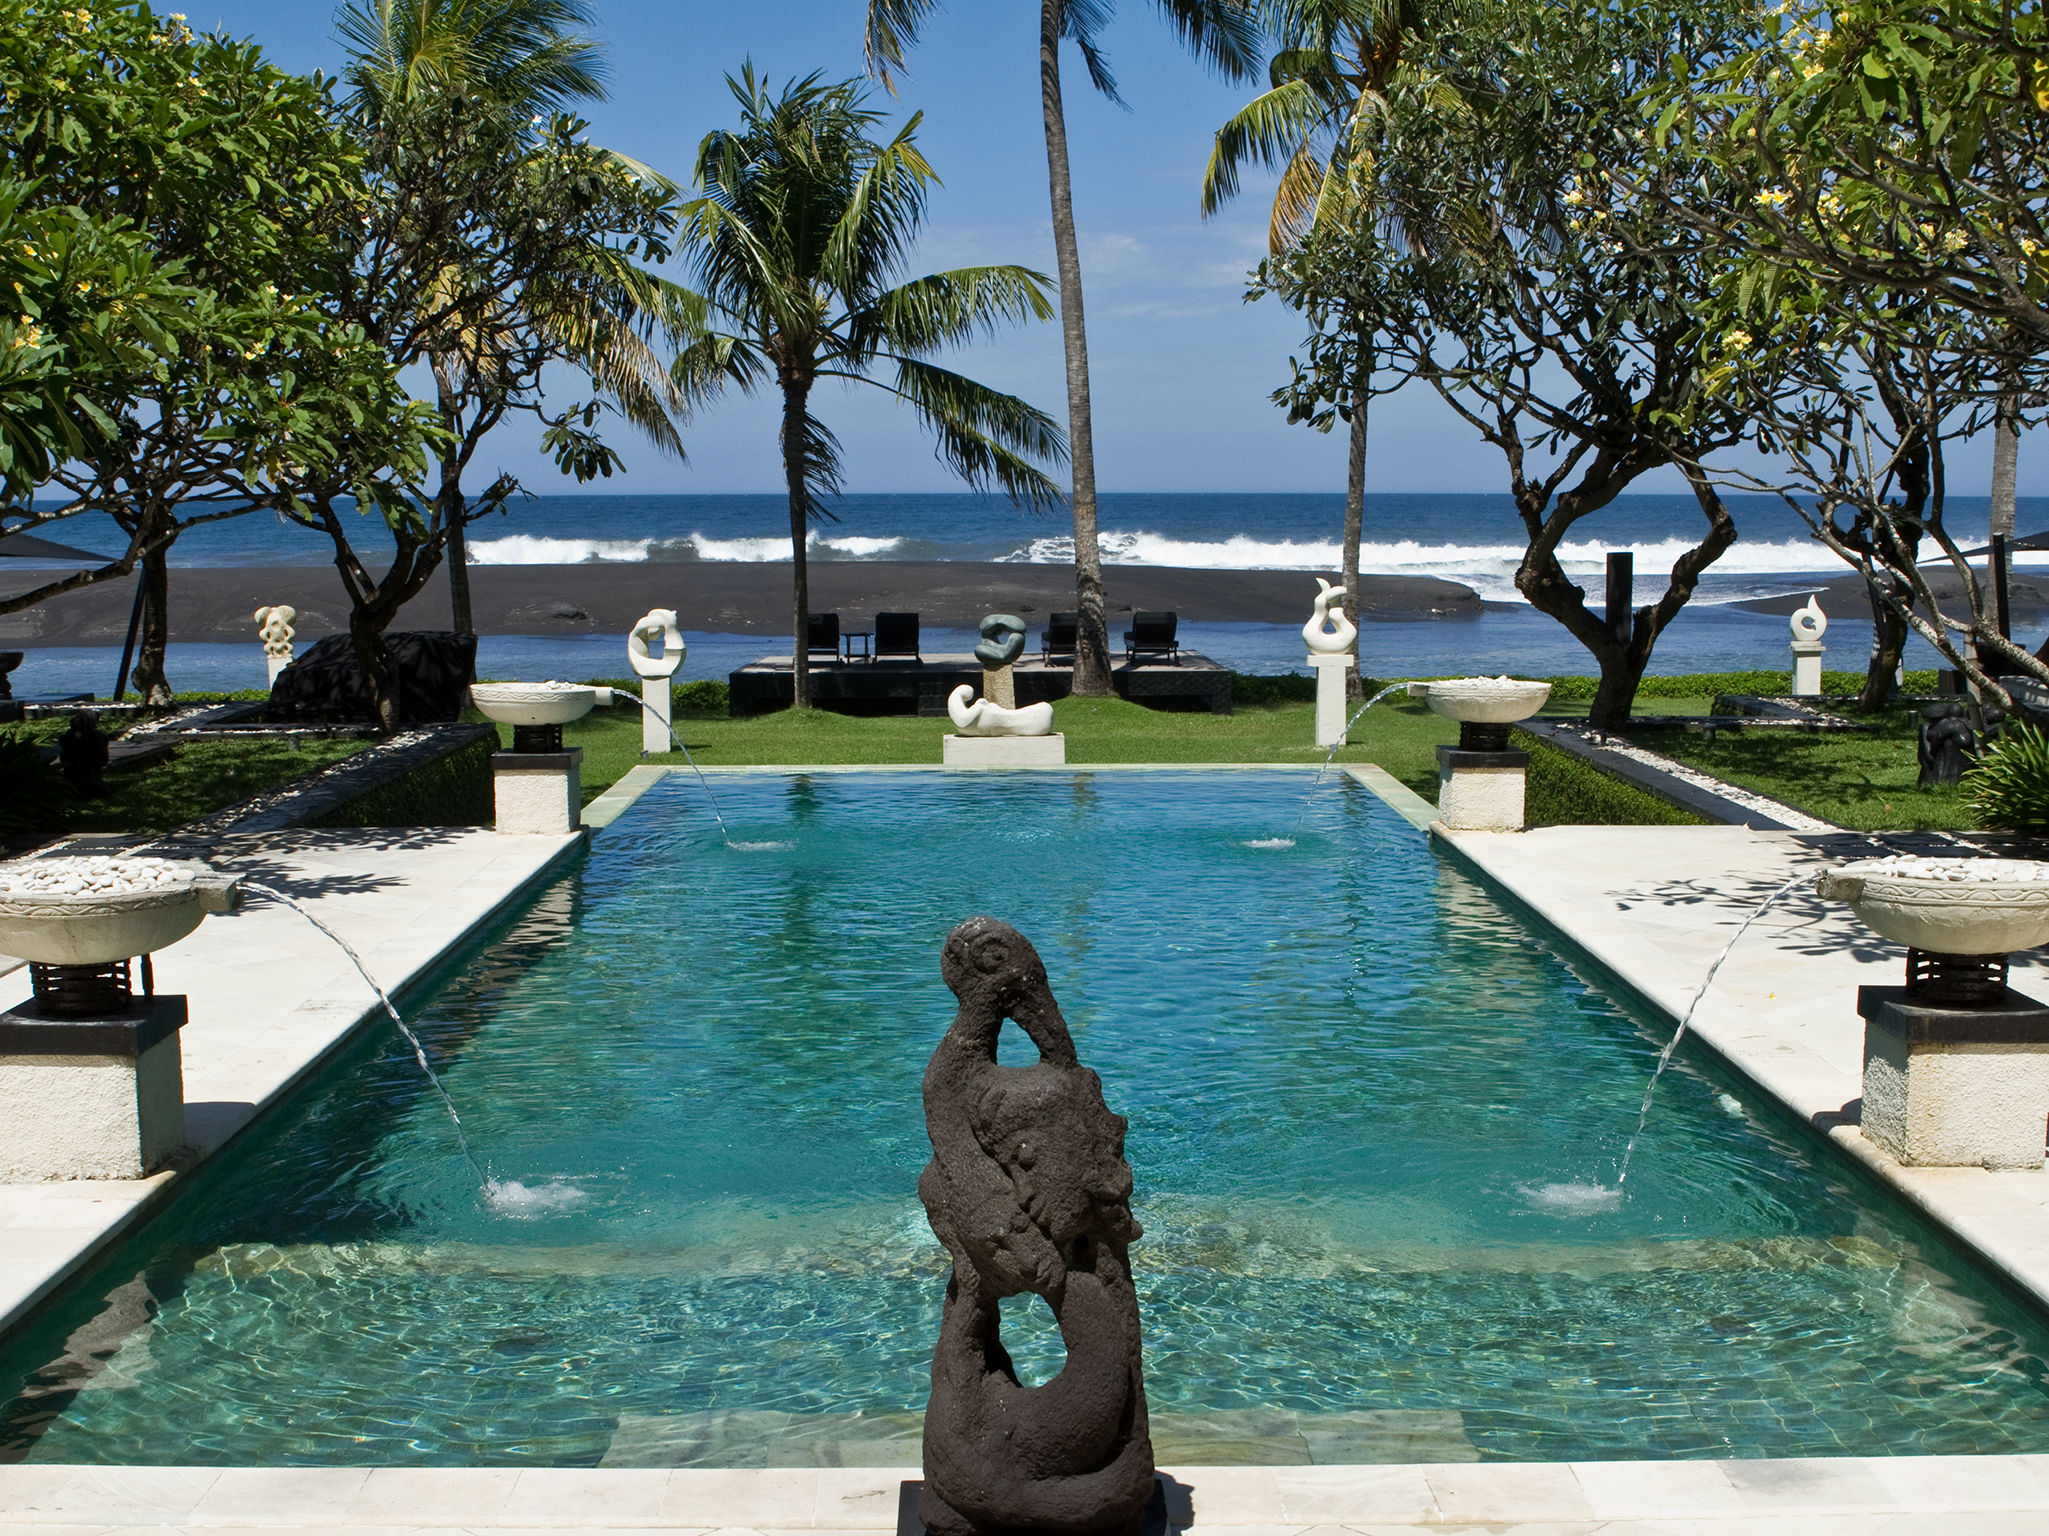 The Ylang Ylang - Private pool with a view - The Ylang Ylang, Ketewel, Bali